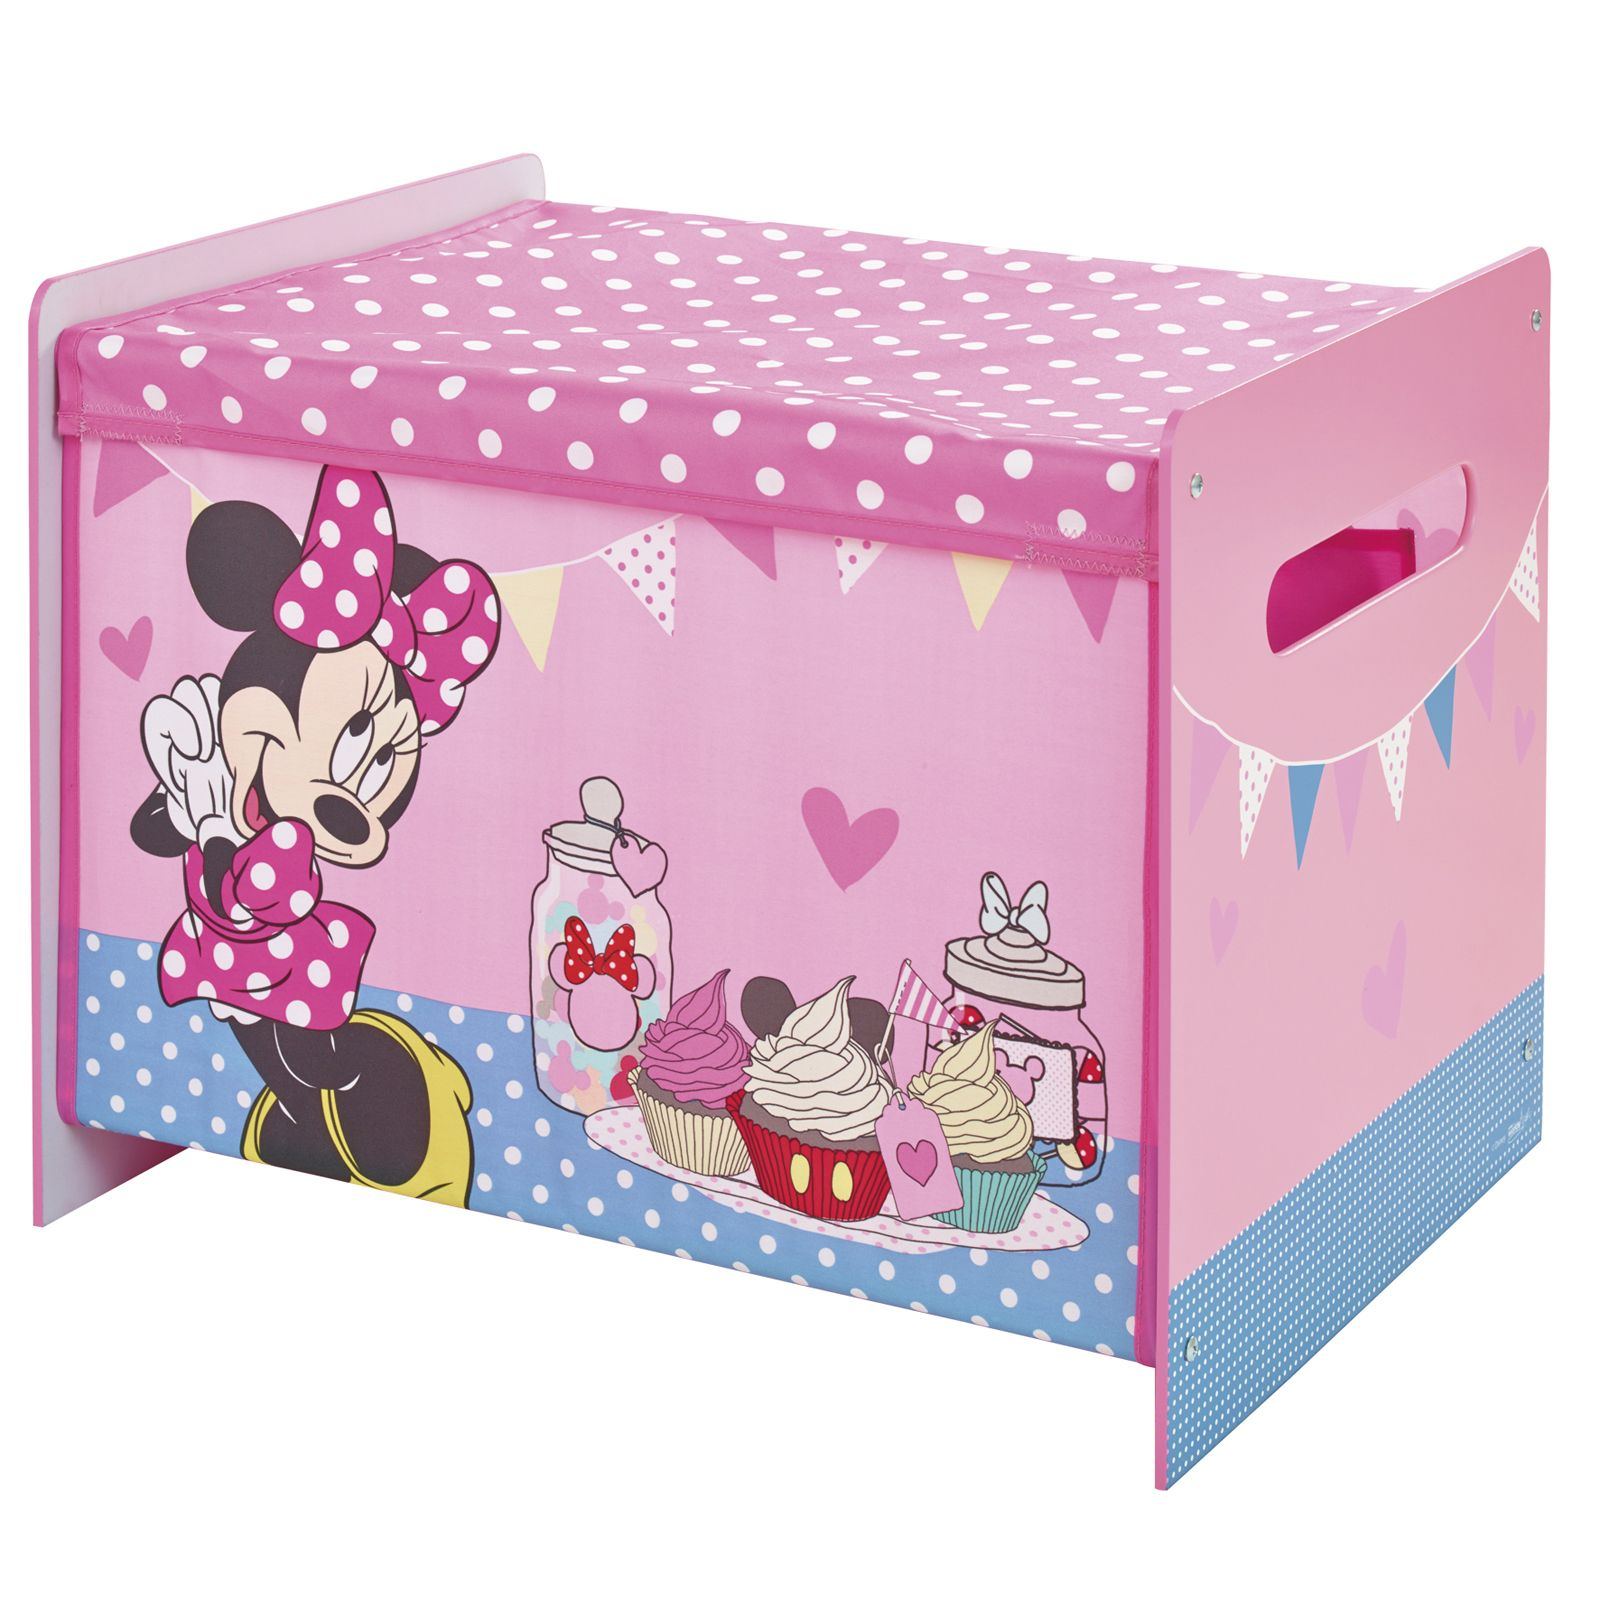 minnie mouse cosytime toy box new official bedroom storage pink girls bedroom ebay. Black Bedroom Furniture Sets. Home Design Ideas